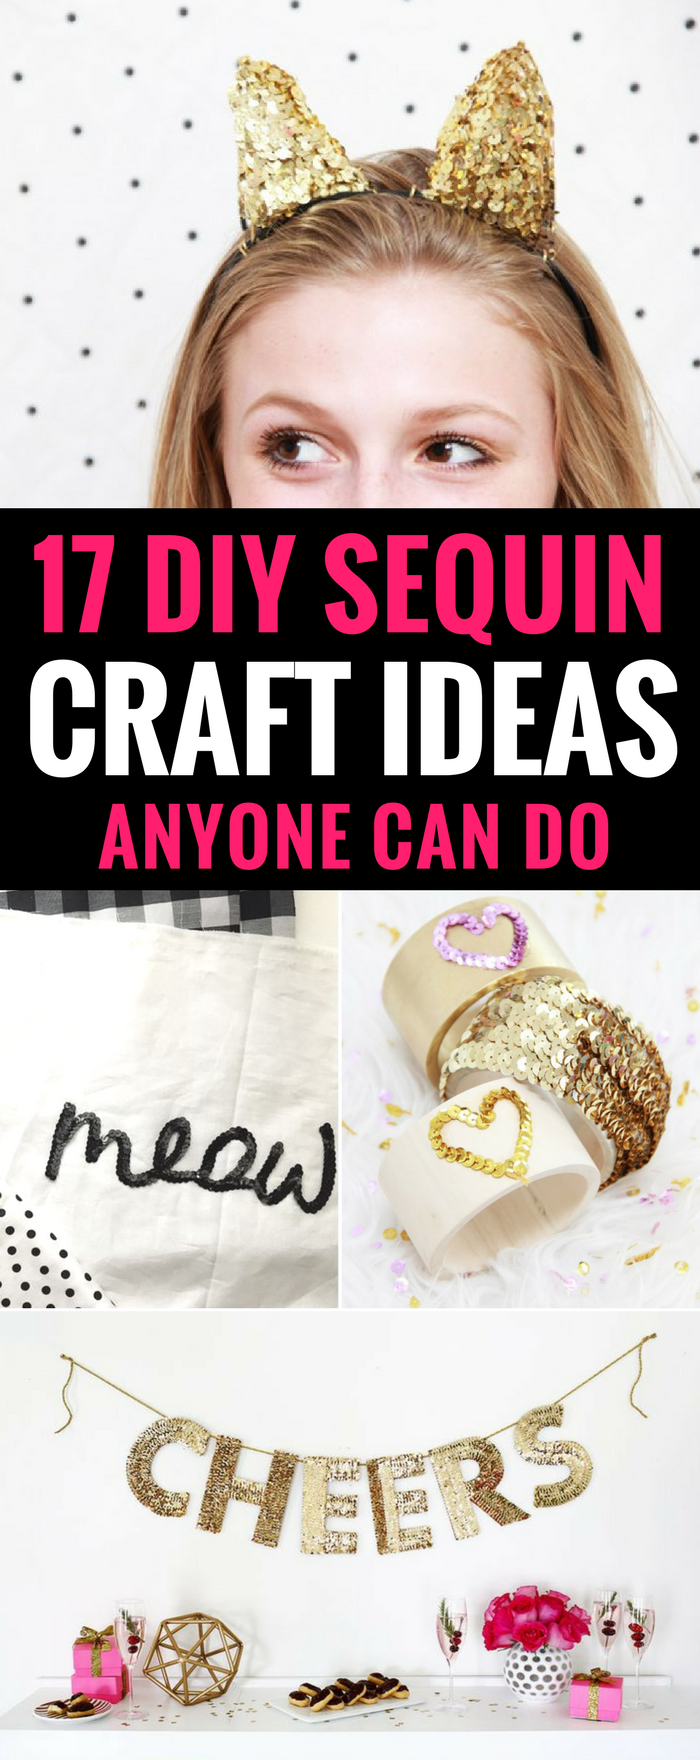 DIY Sequin Crafts Ideas Anyone Can Do, Sparkly Projects for Fashion, Arts, or Home Decor